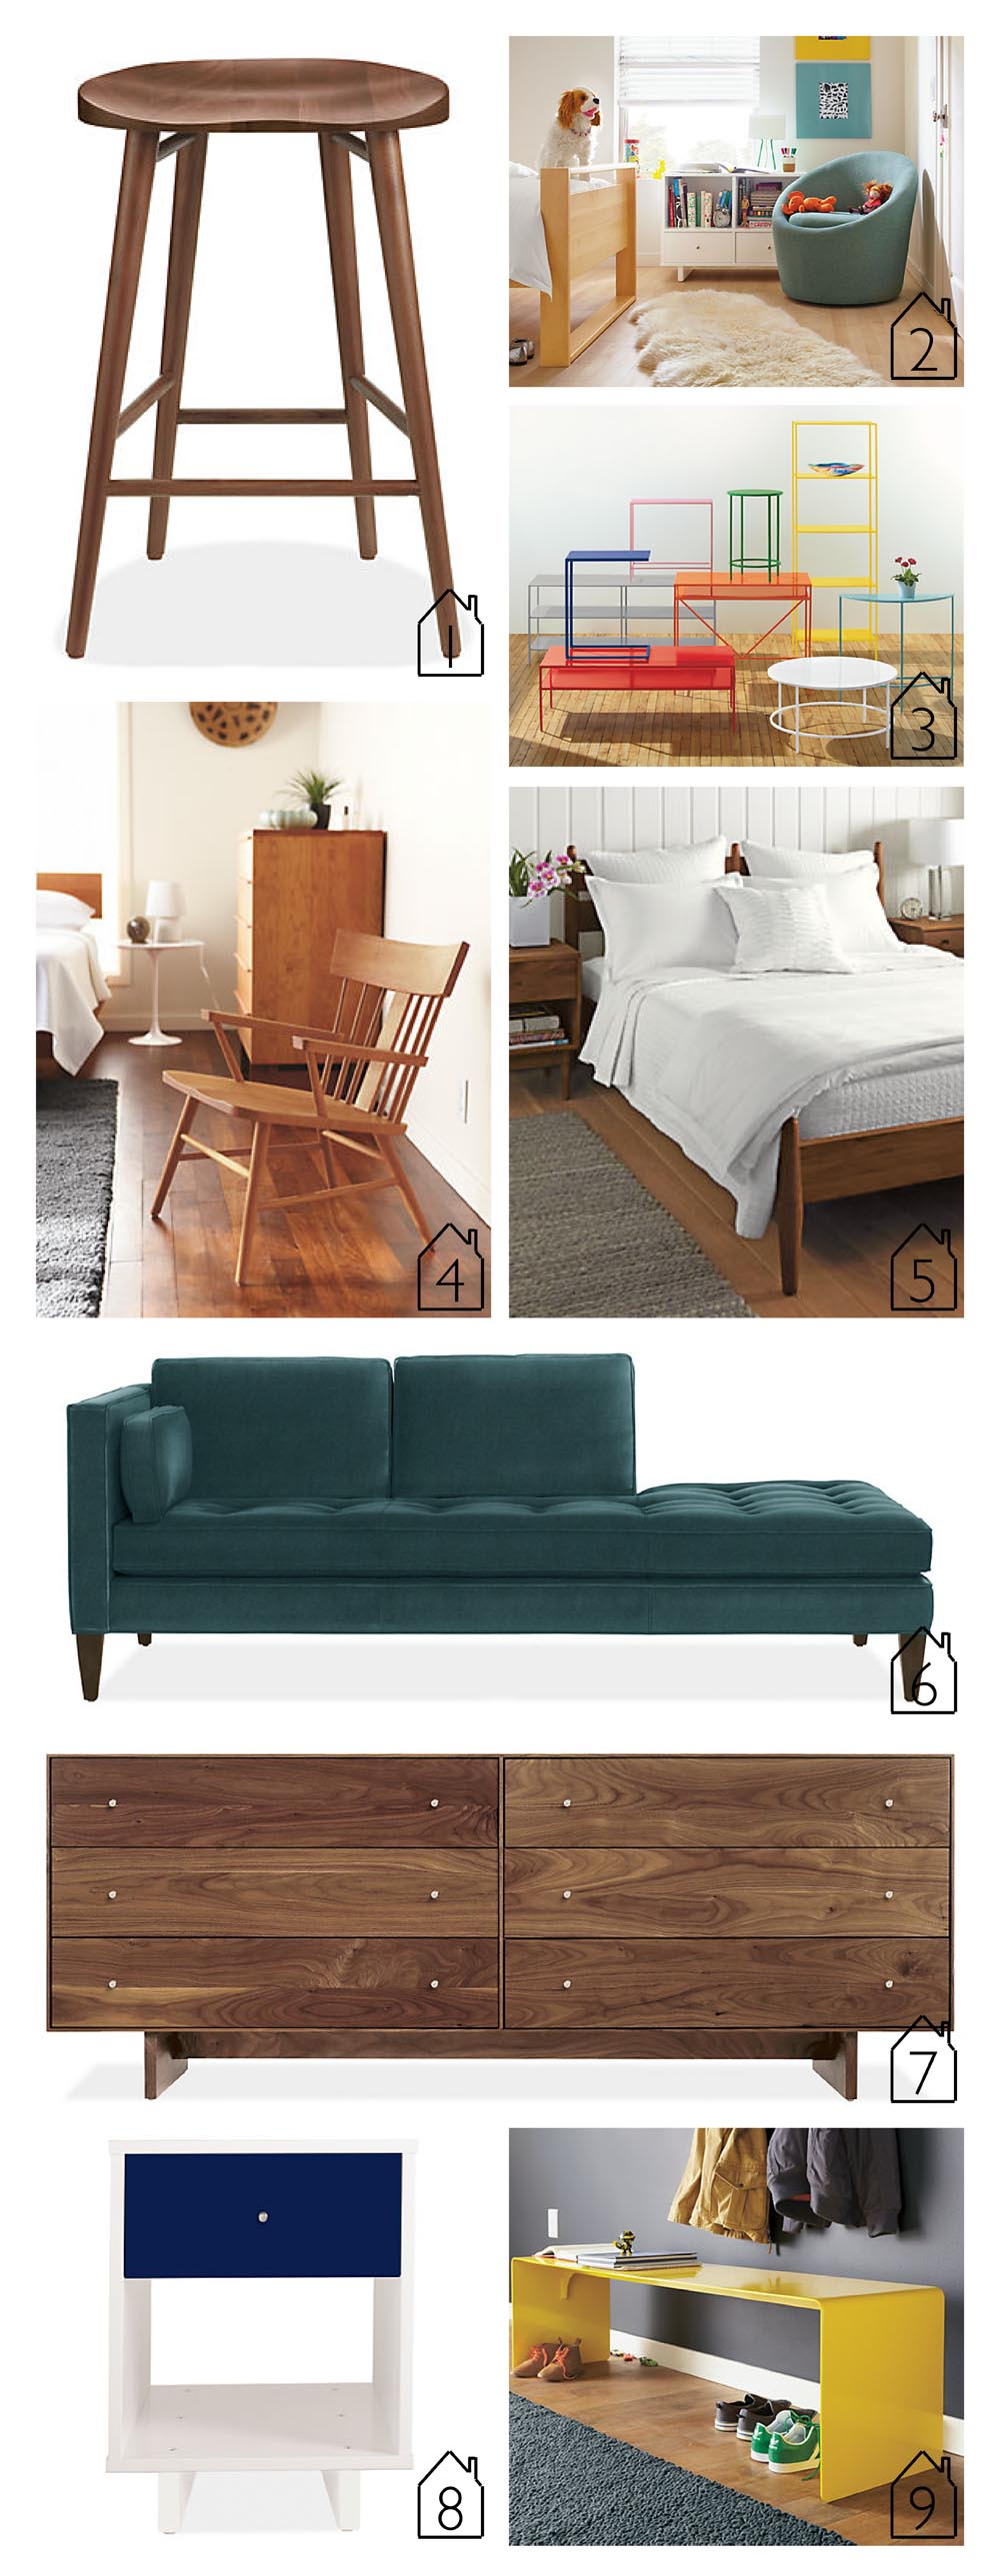 1. Bay Counter and Bar Stools  2. Celeste Swivel Chair  3. Slim Tables  4. Sandberg Chair  5. Grove Bed  6. Hutton Sofa  7. Hudson Dresser  8. Moda Nightstand  9. Cooper Bench